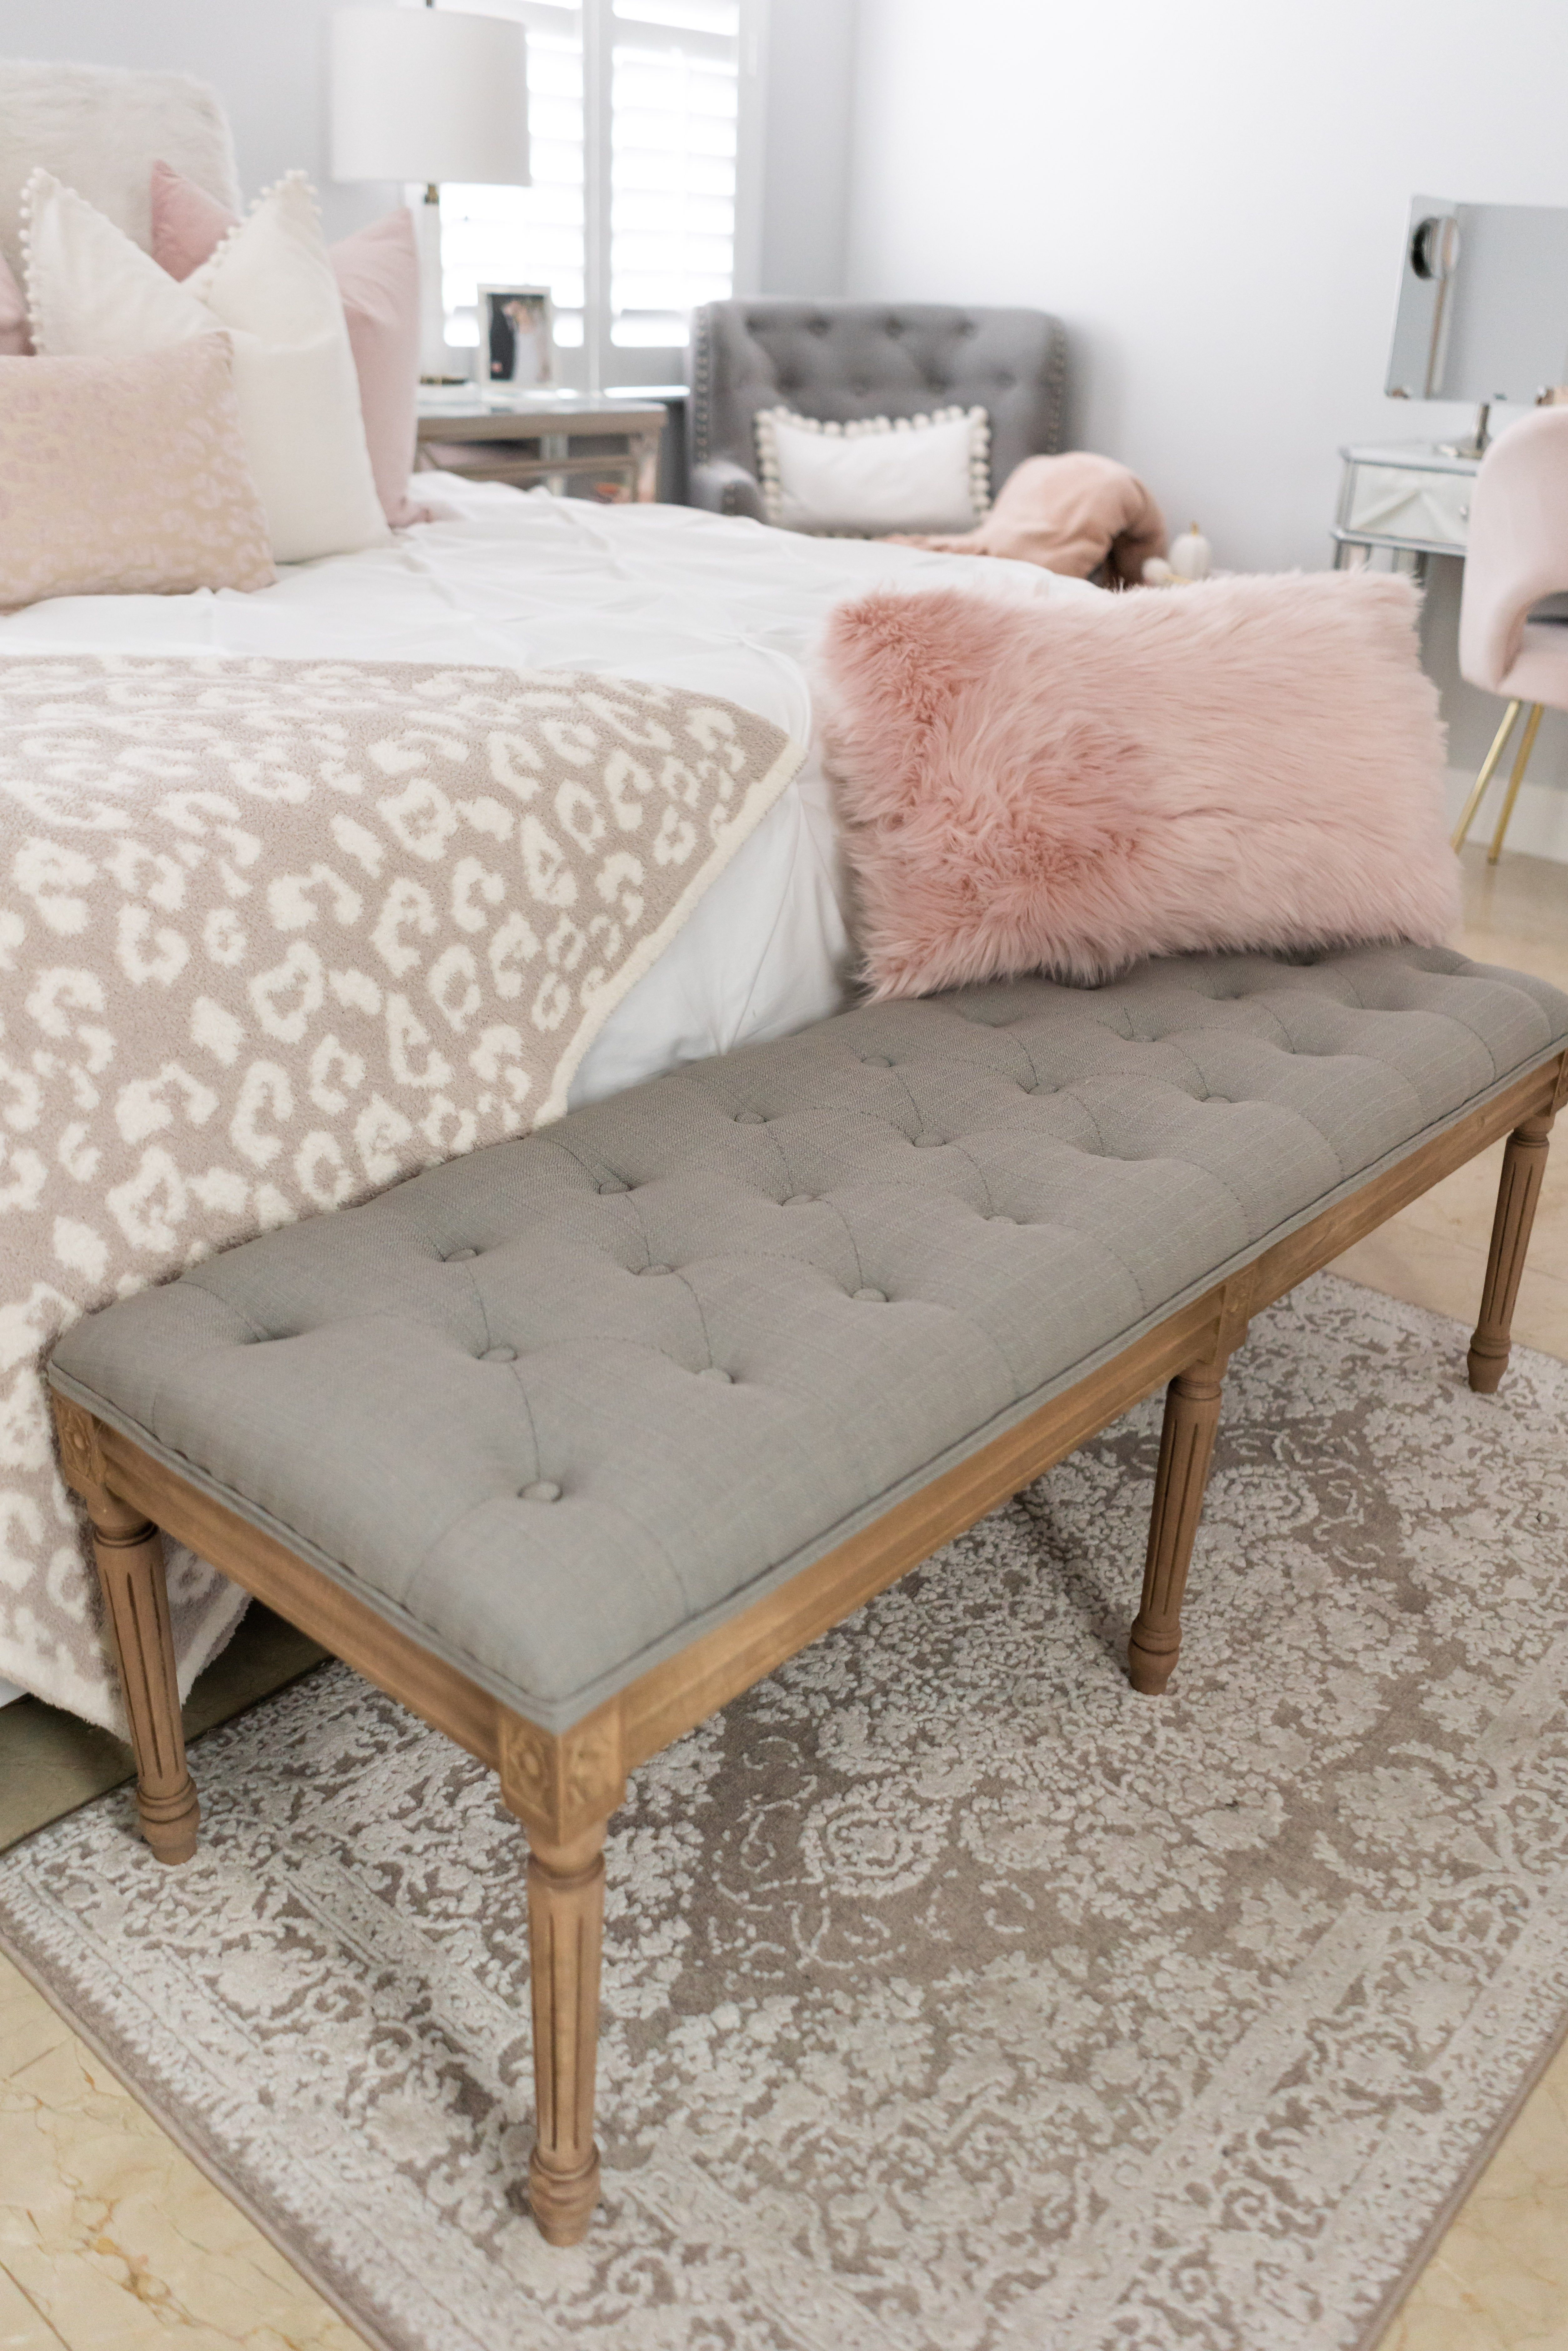 How To Make Your Bedroom Cozy Upholstered Bench Bedroom